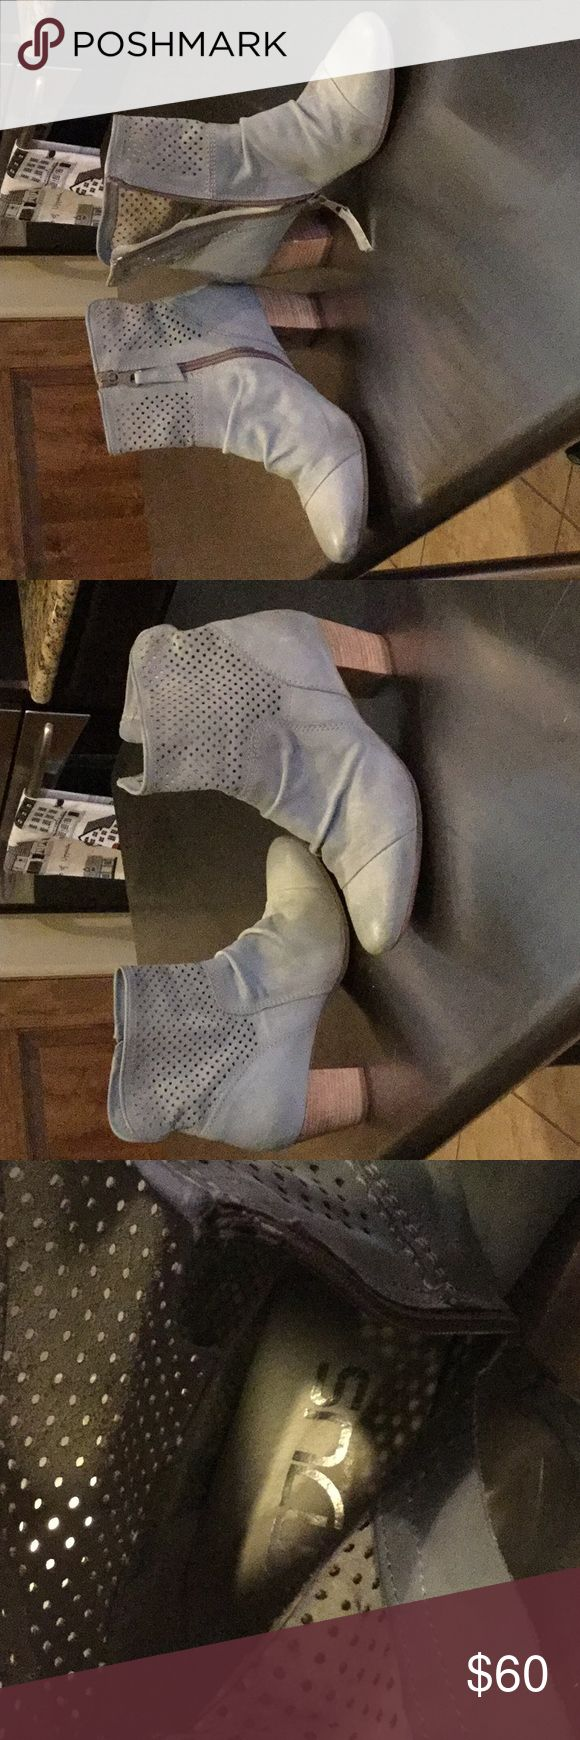 Ankle boots Comfortable mildly worn ankle boot mjus Shoes Ankle Boots & Booties